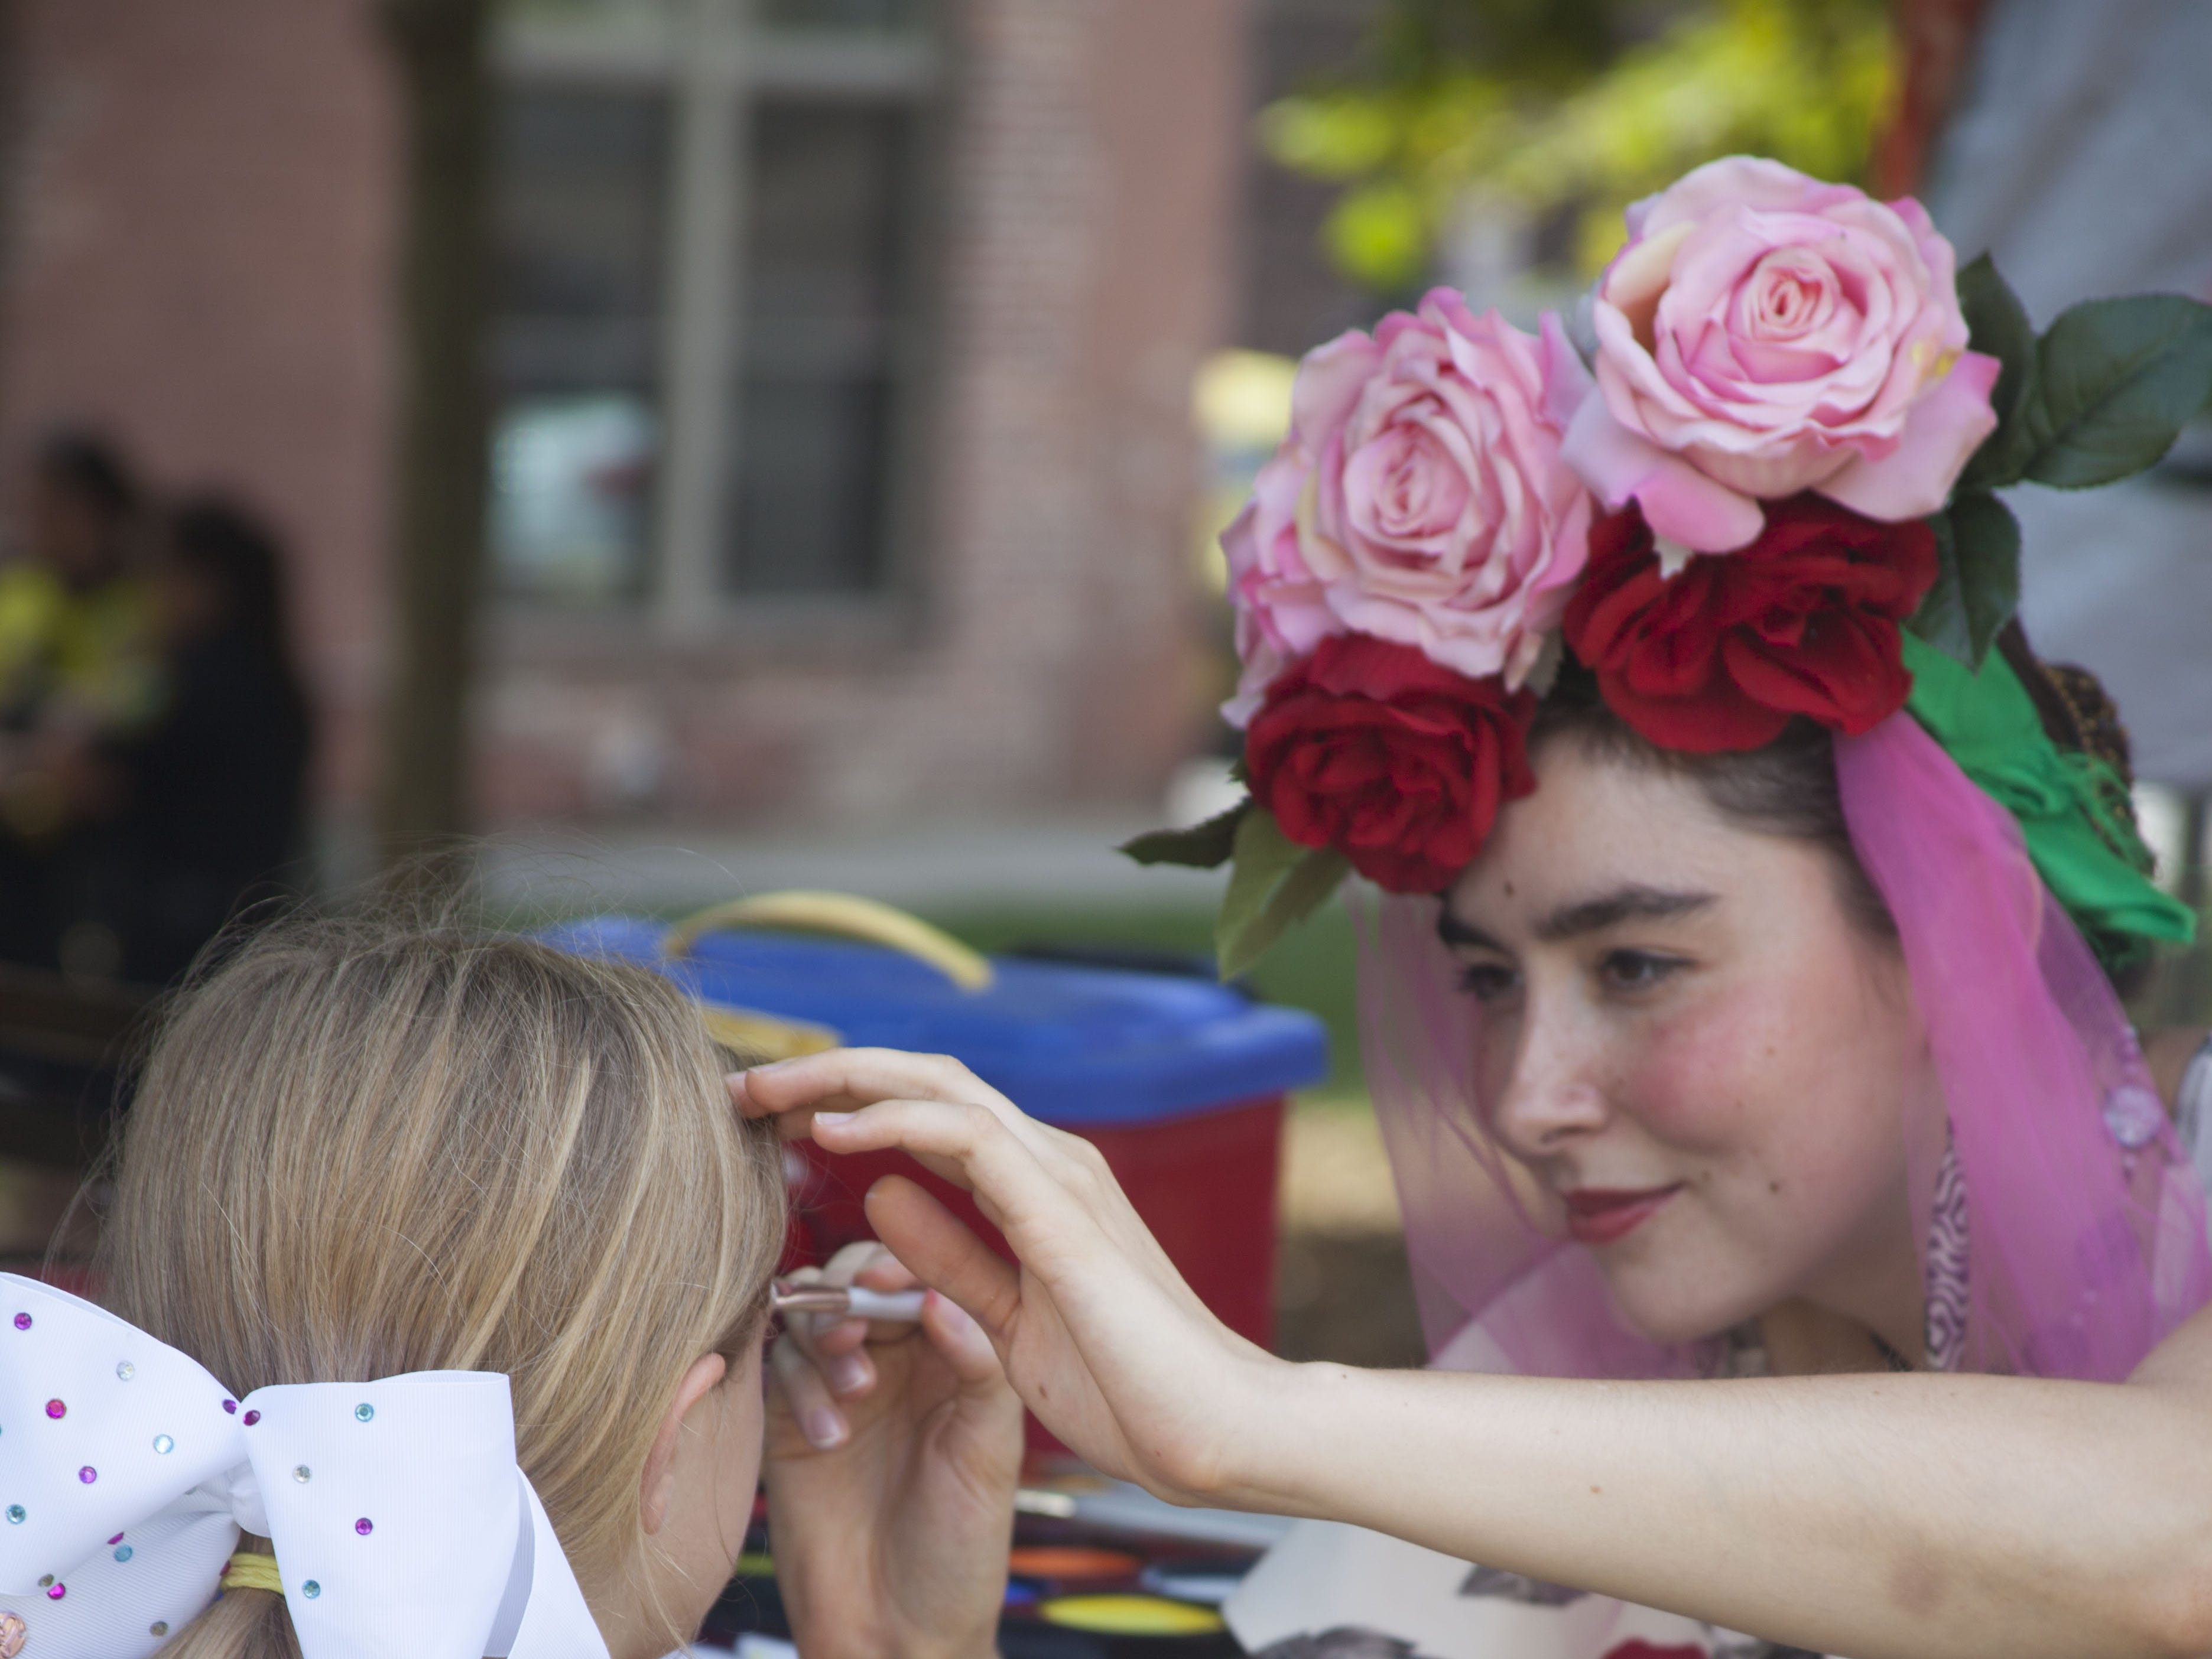 Bonnie Rockwood of The Lady in Red Art paints the face of Madison Gravelle at the 2018 Goombay Festival at the Roger McGuire Green in Pack Square Park on Sept. 8, 2018.